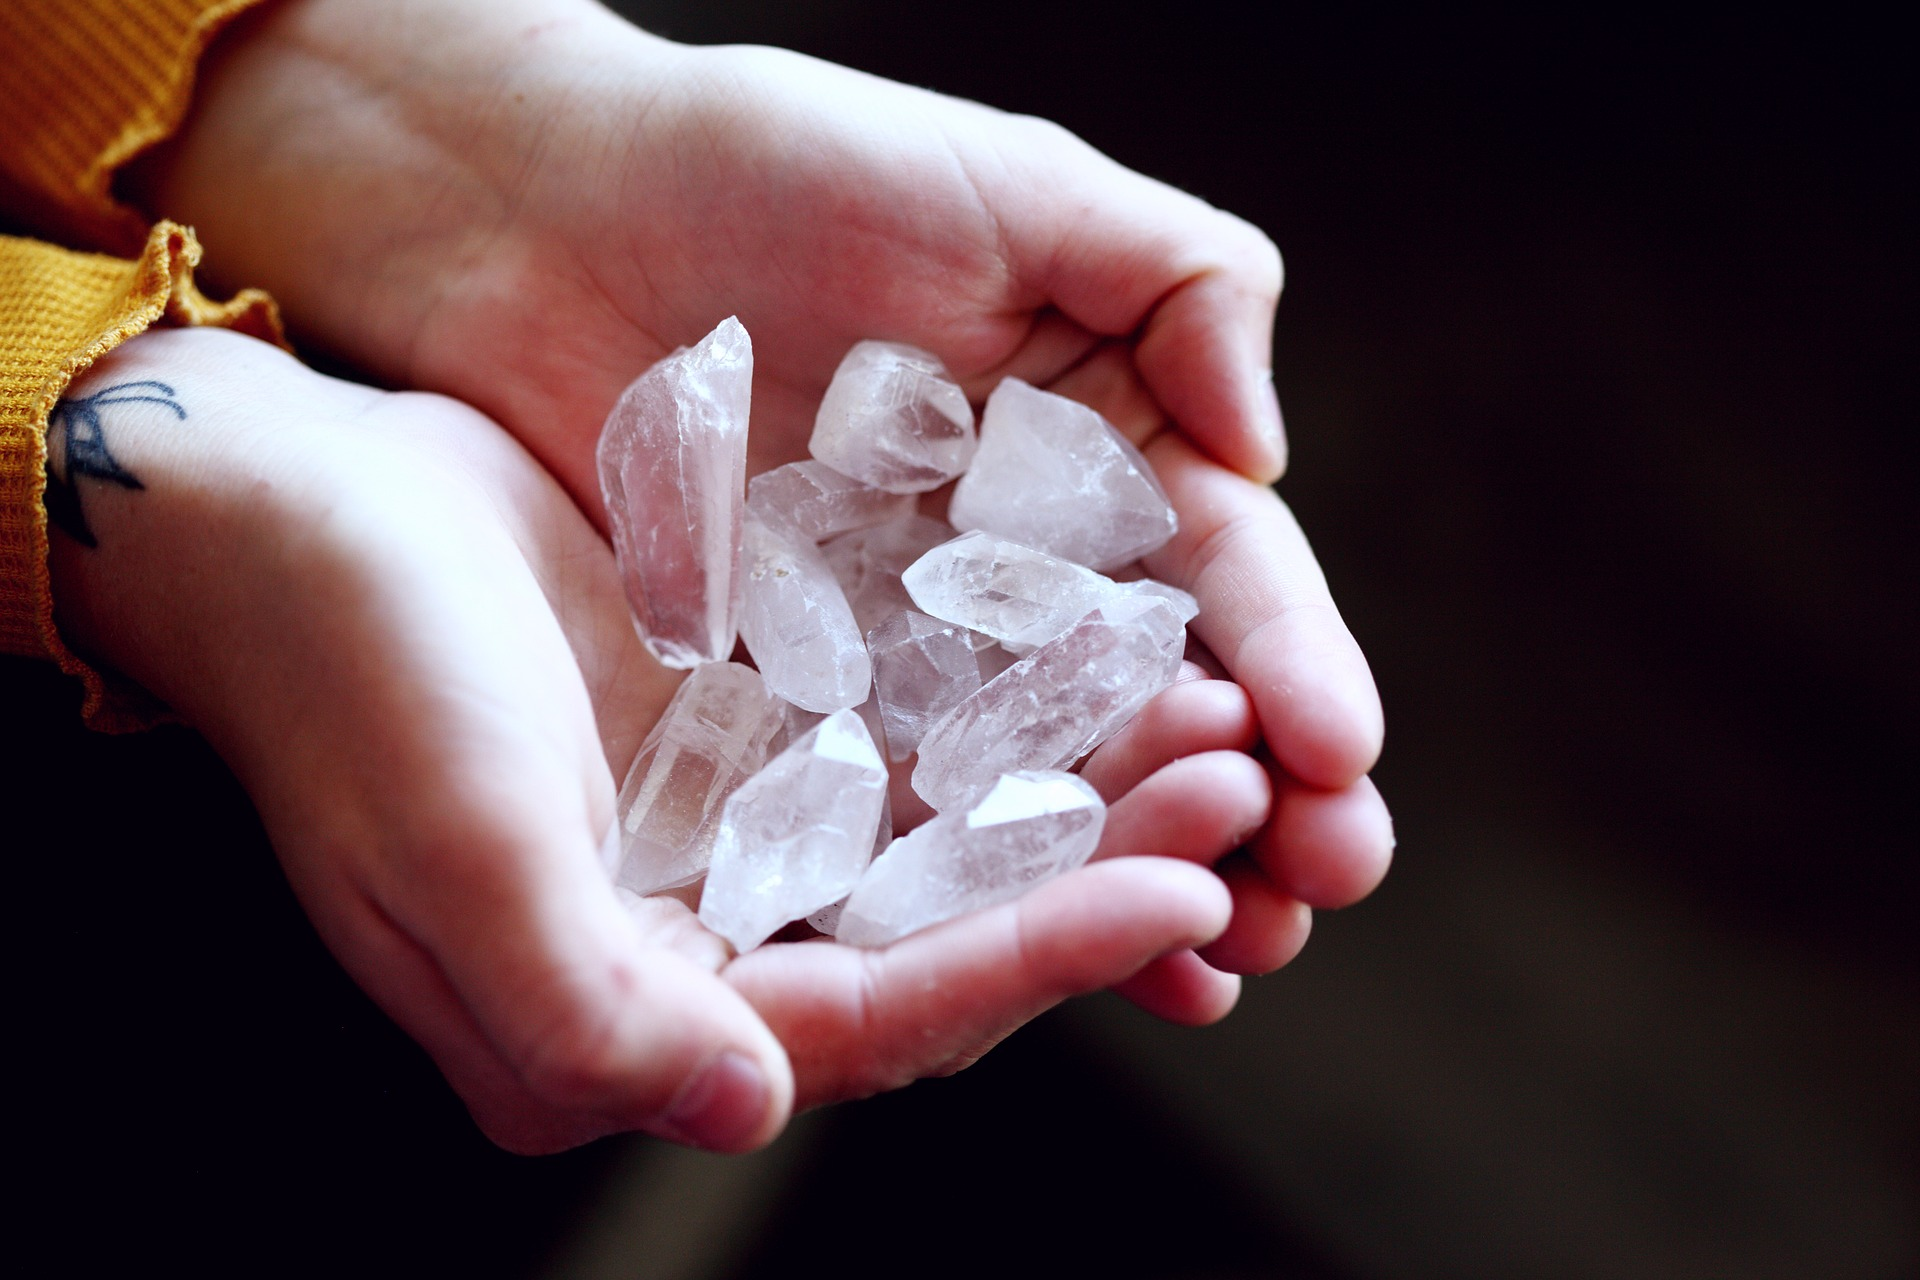 raw quartz in hands